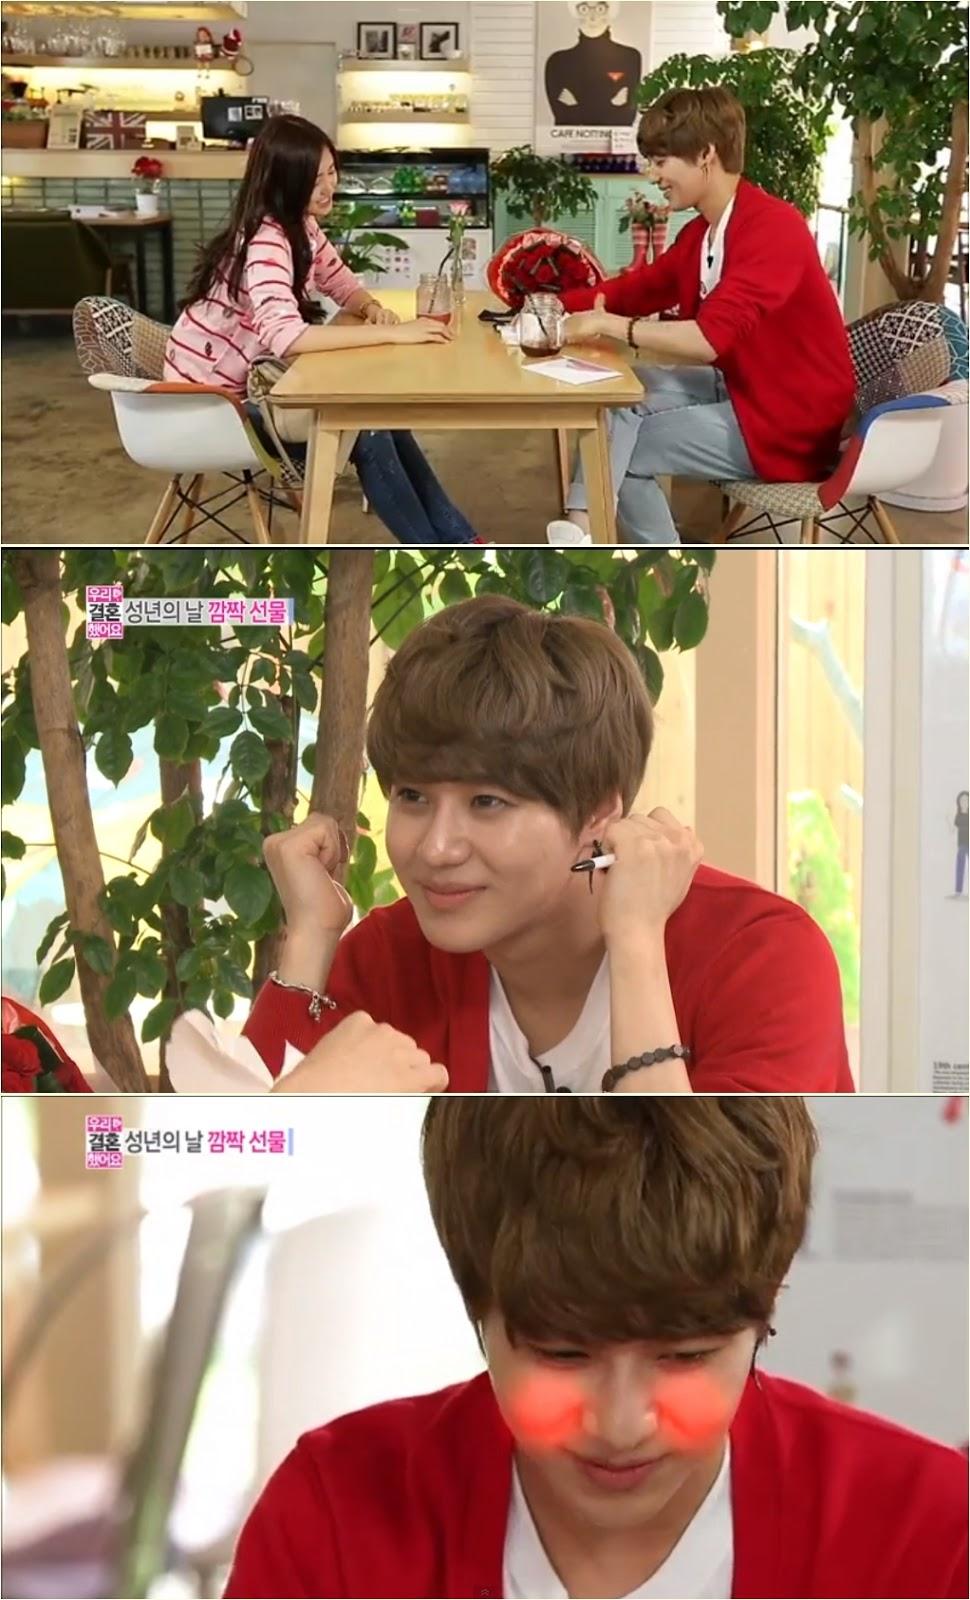 Taemin and naeun wgm episode 1 eng sub / Assassinio sul nilo cast